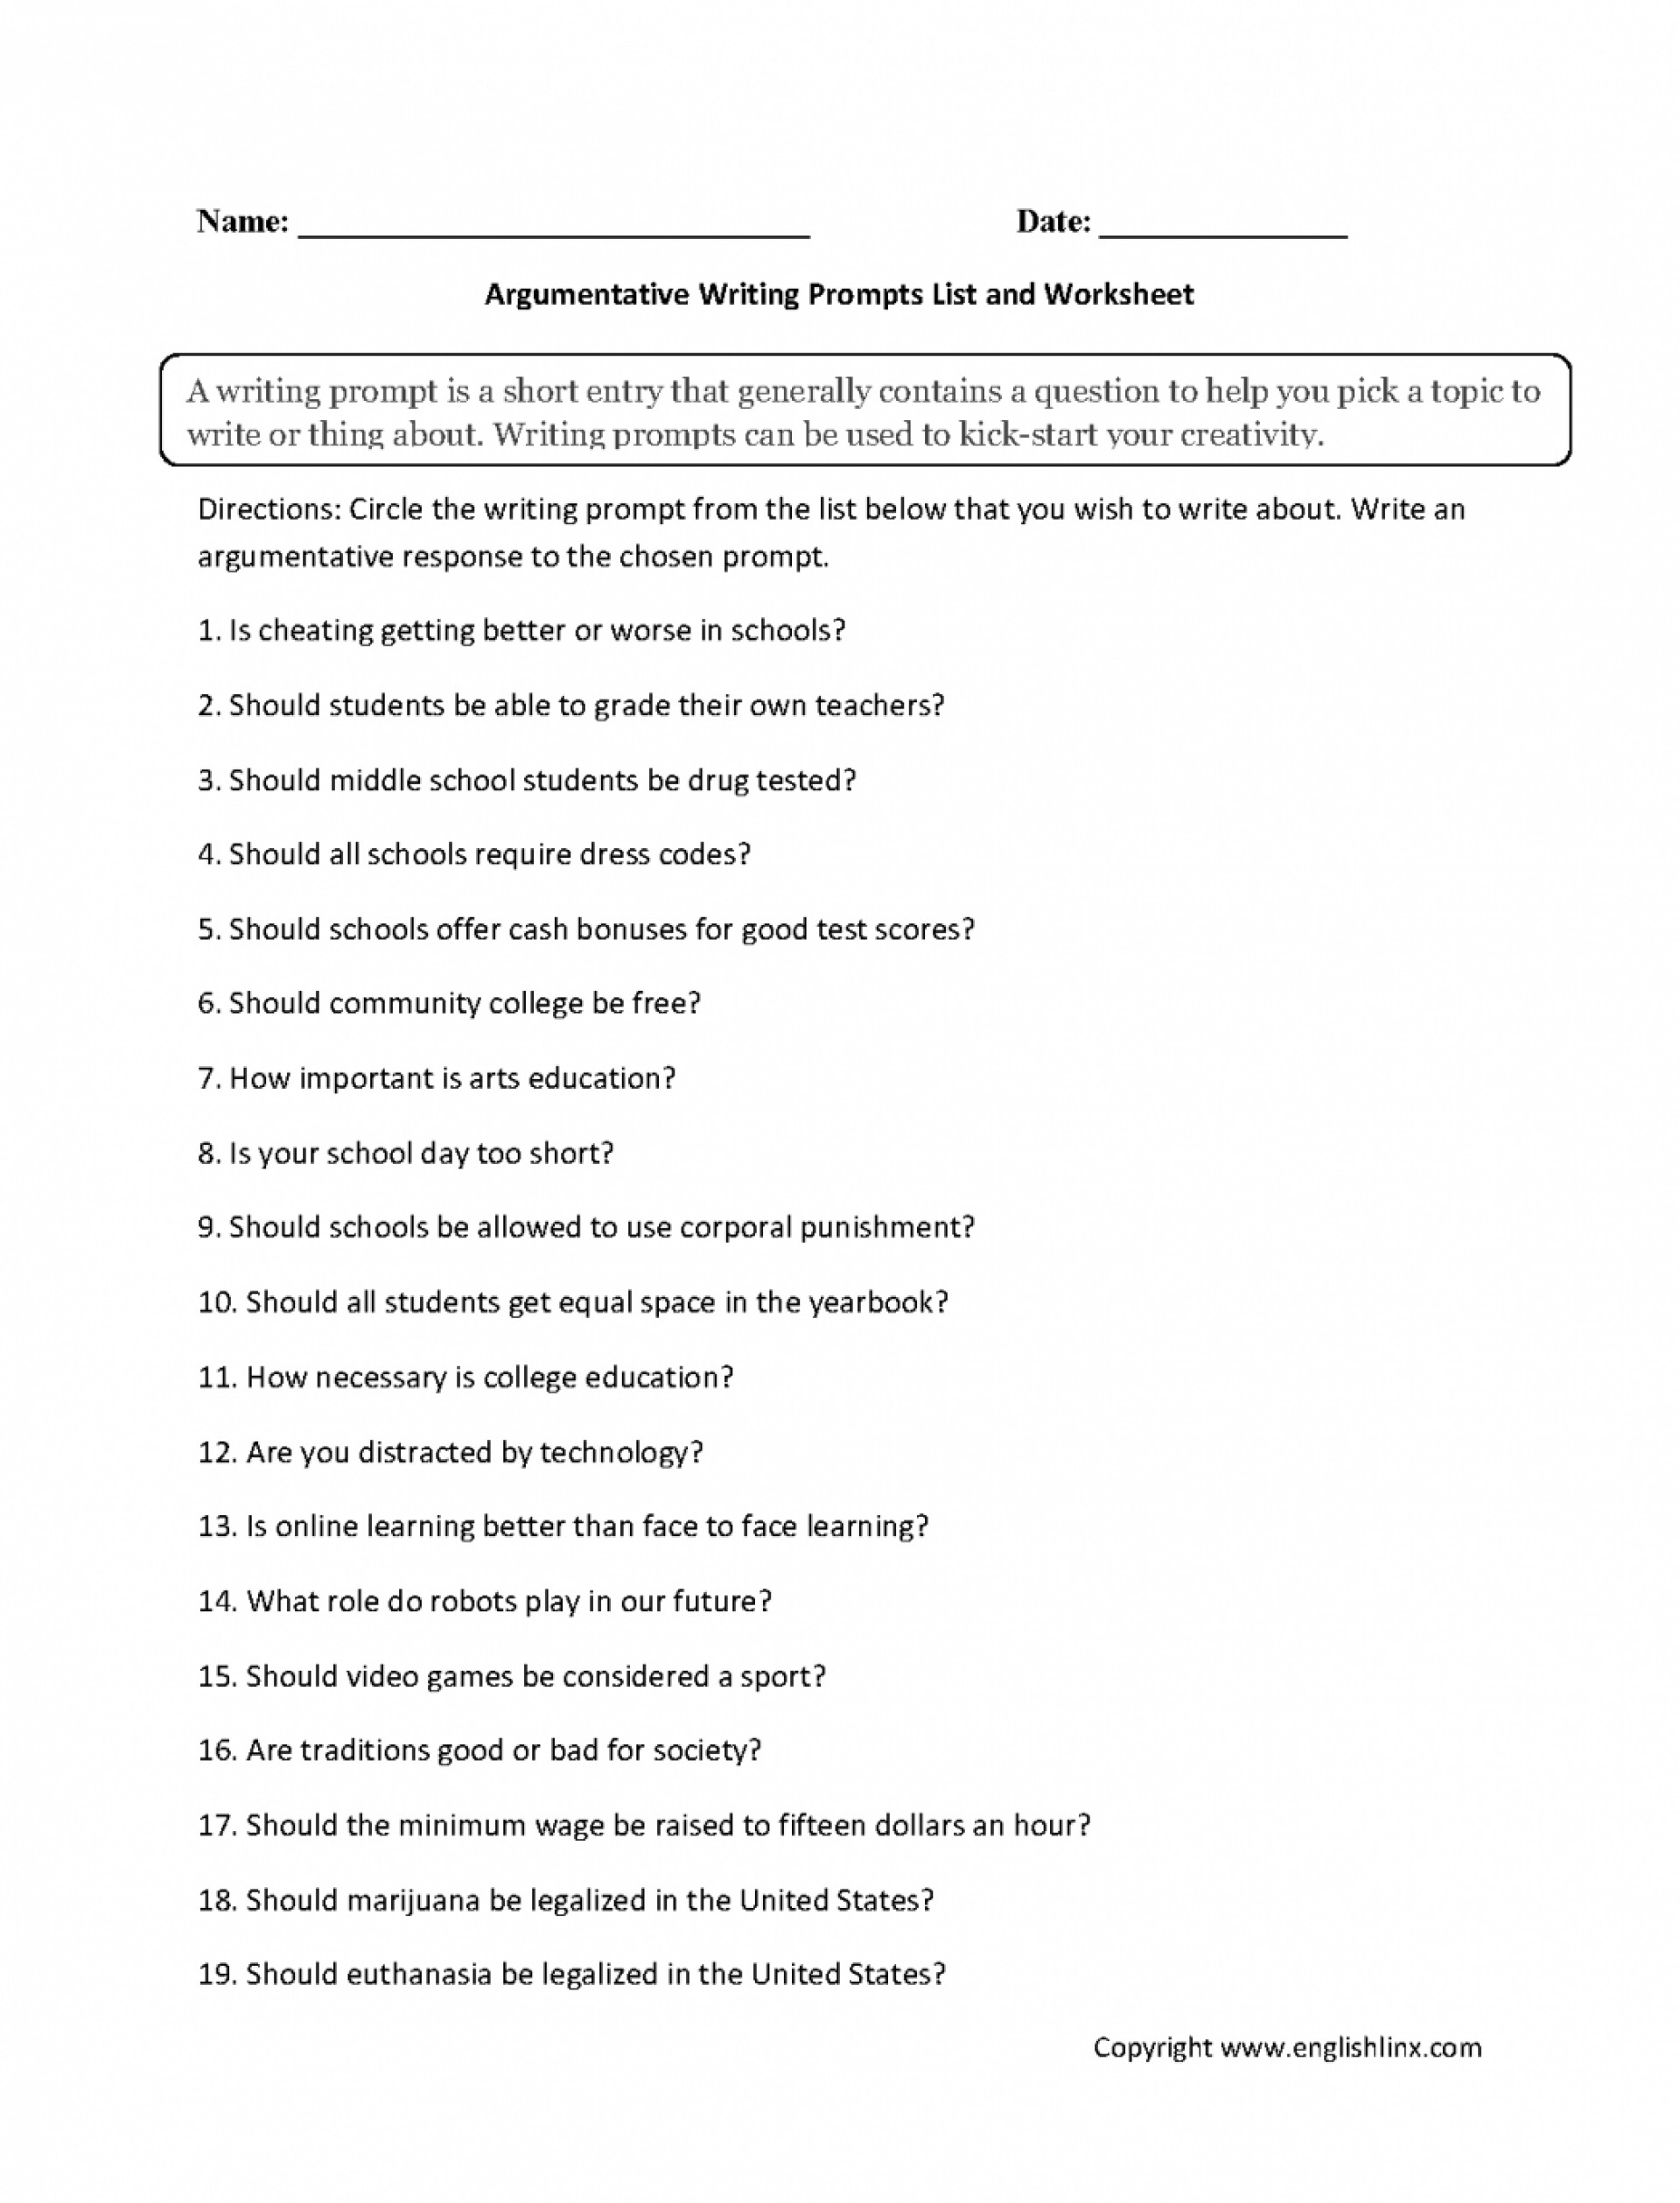 011 Argument Essay Prompts Goal Blockety Co Argumentative Topics Writing List Work For High School Subjects About Animals On Racism College Sports Middle 1048x1374 Excellent Questions Othello Paper 1920